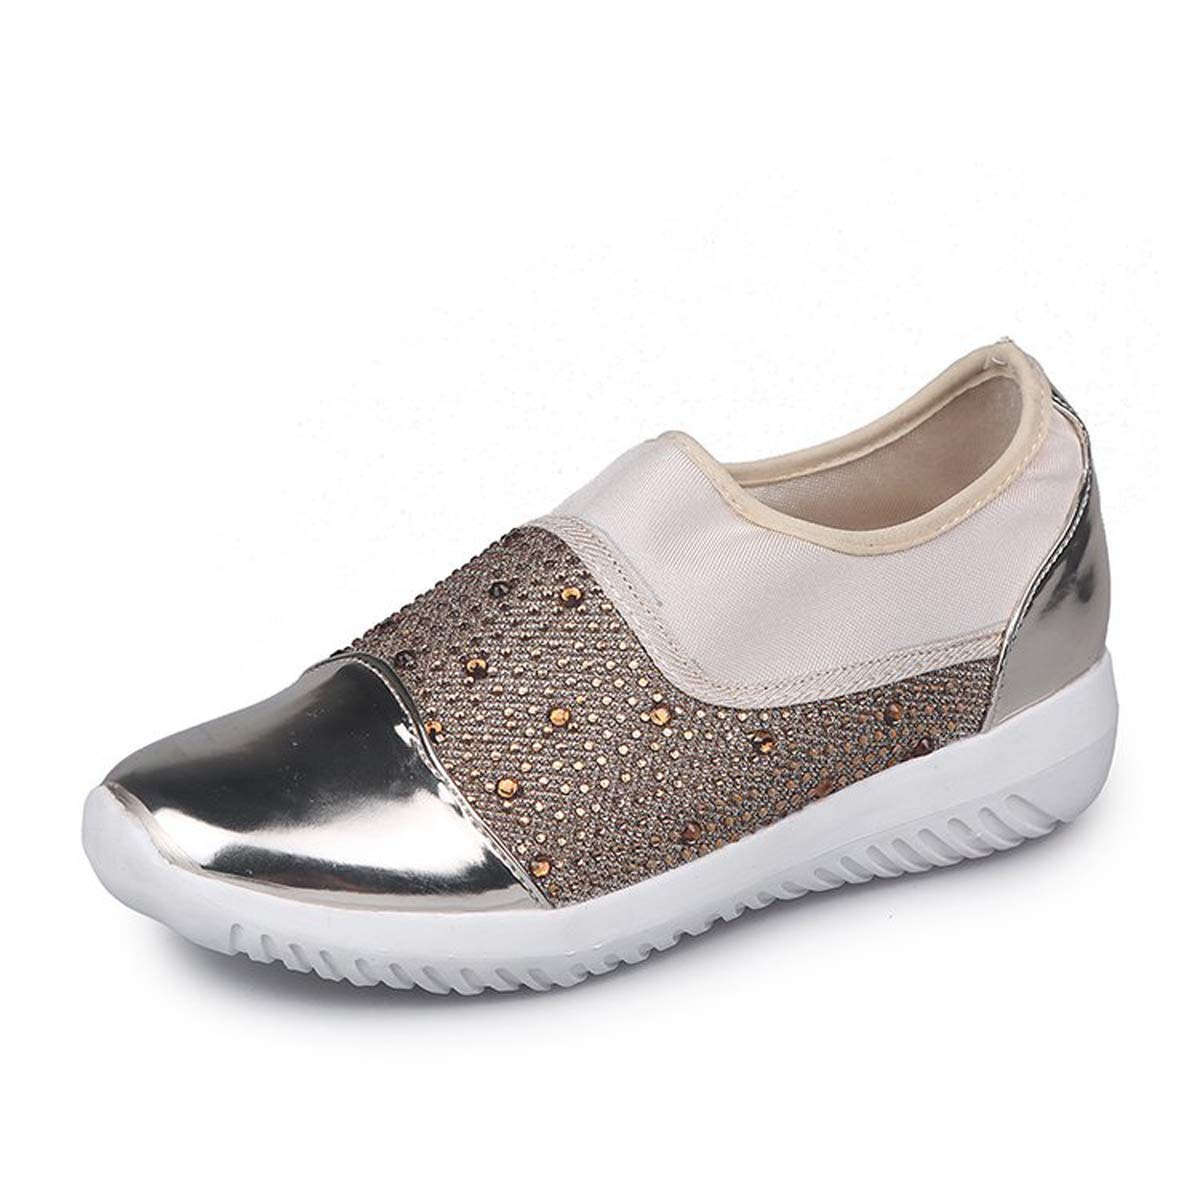 VFDB Sneakers for Women Running Walking Shoes Lightweight Breathable Athletic Shoes Gold US 7.5